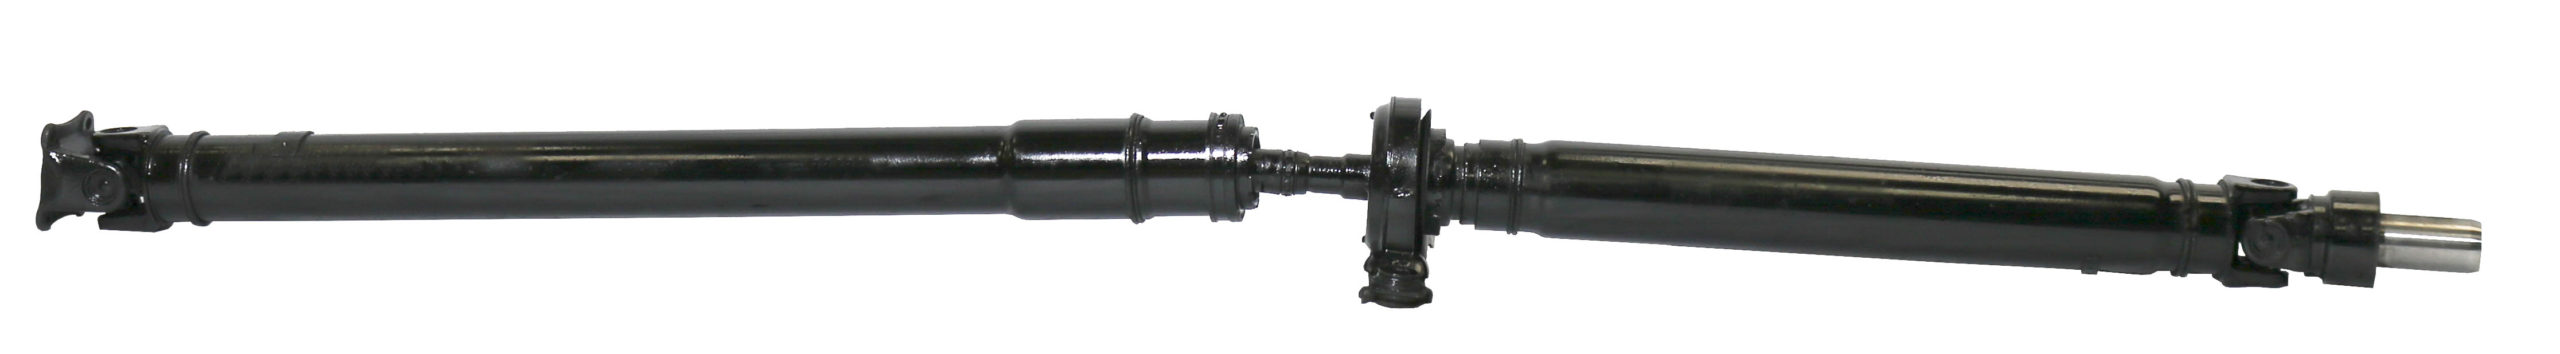 Subaru Impreza rear drive shaft.